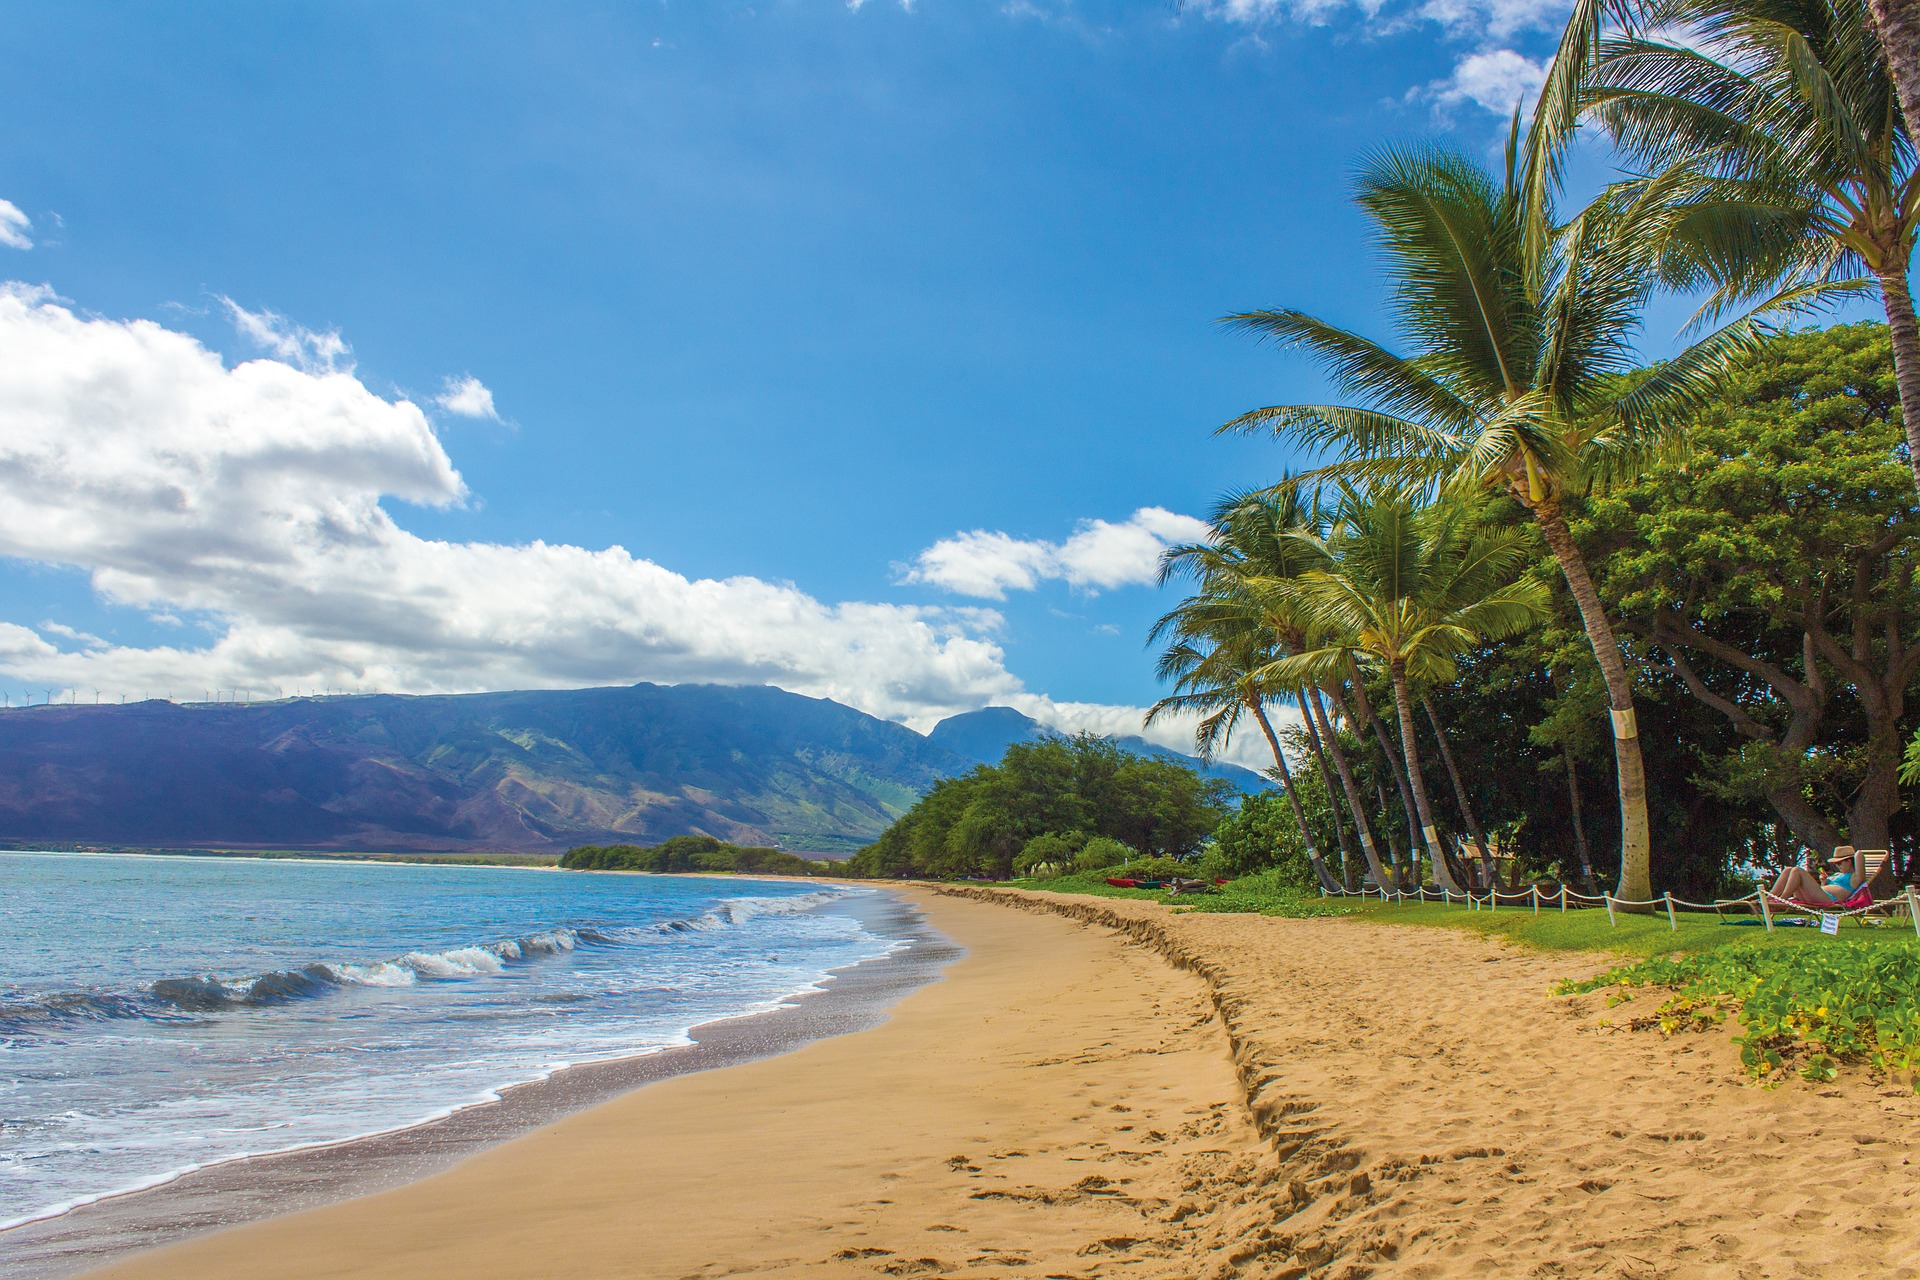 7 Maui Facts That you Should Know Before Visiting